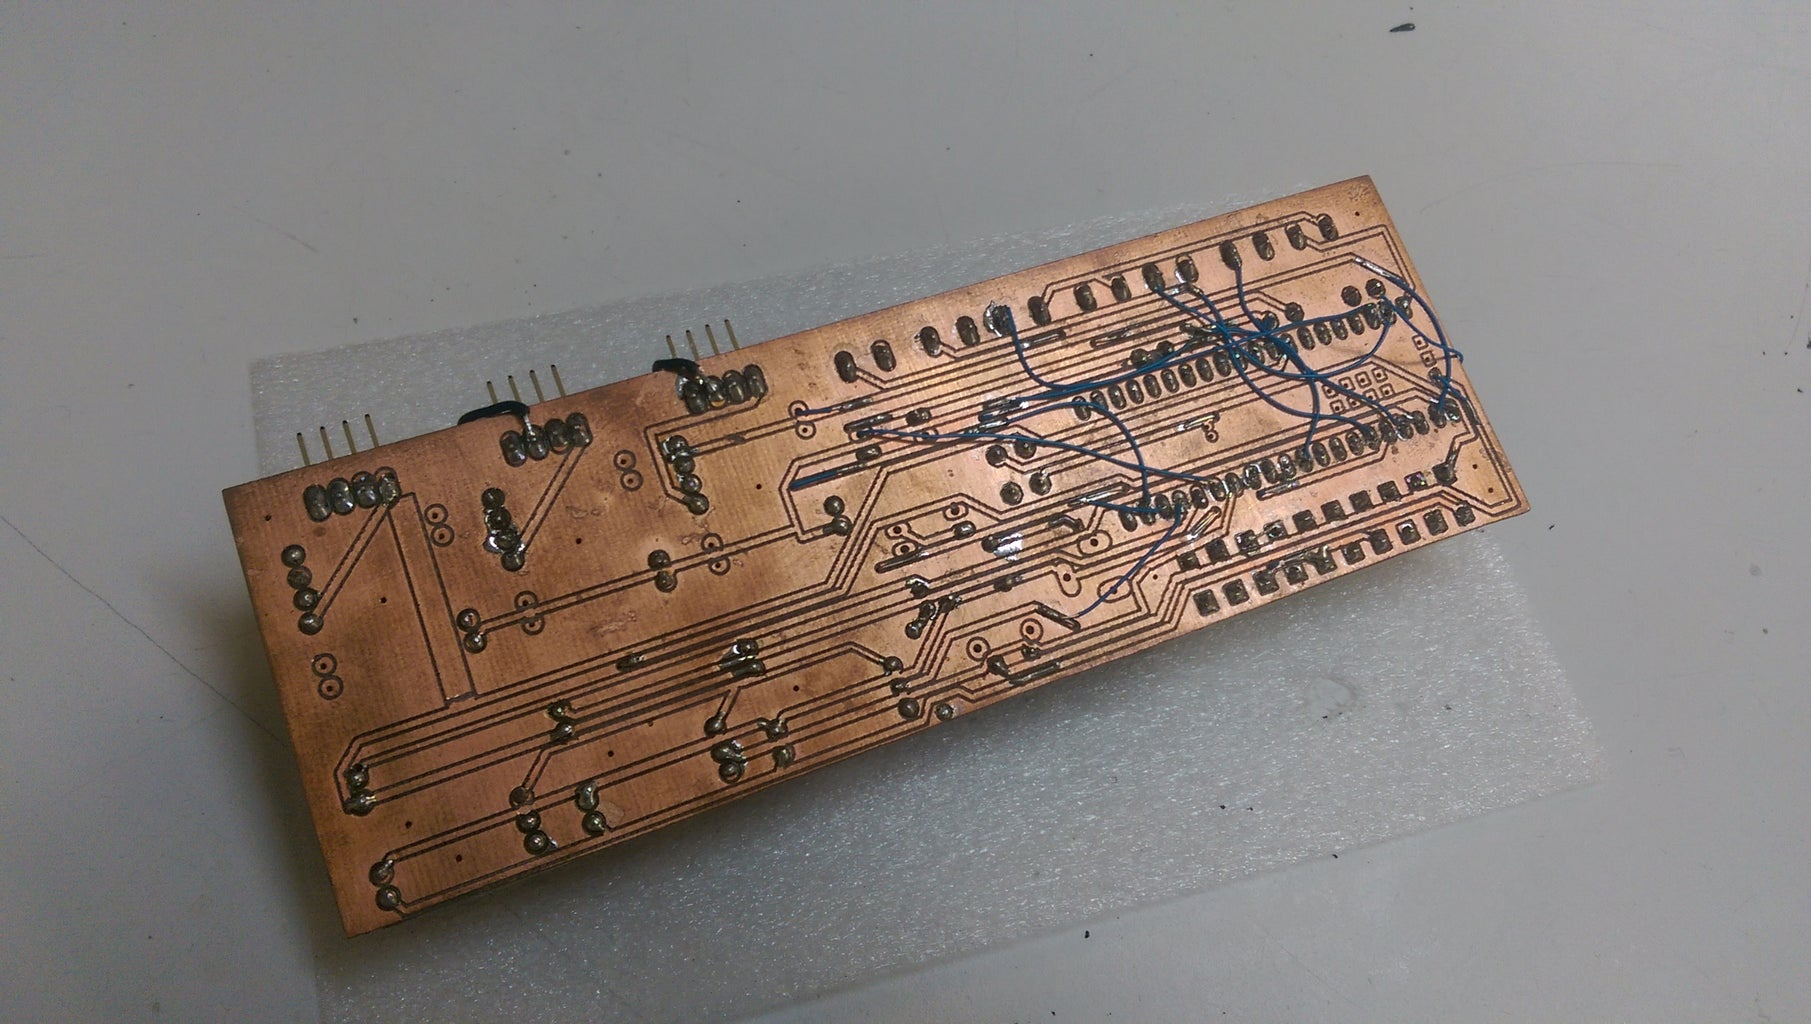 Voila! Your Own PCB